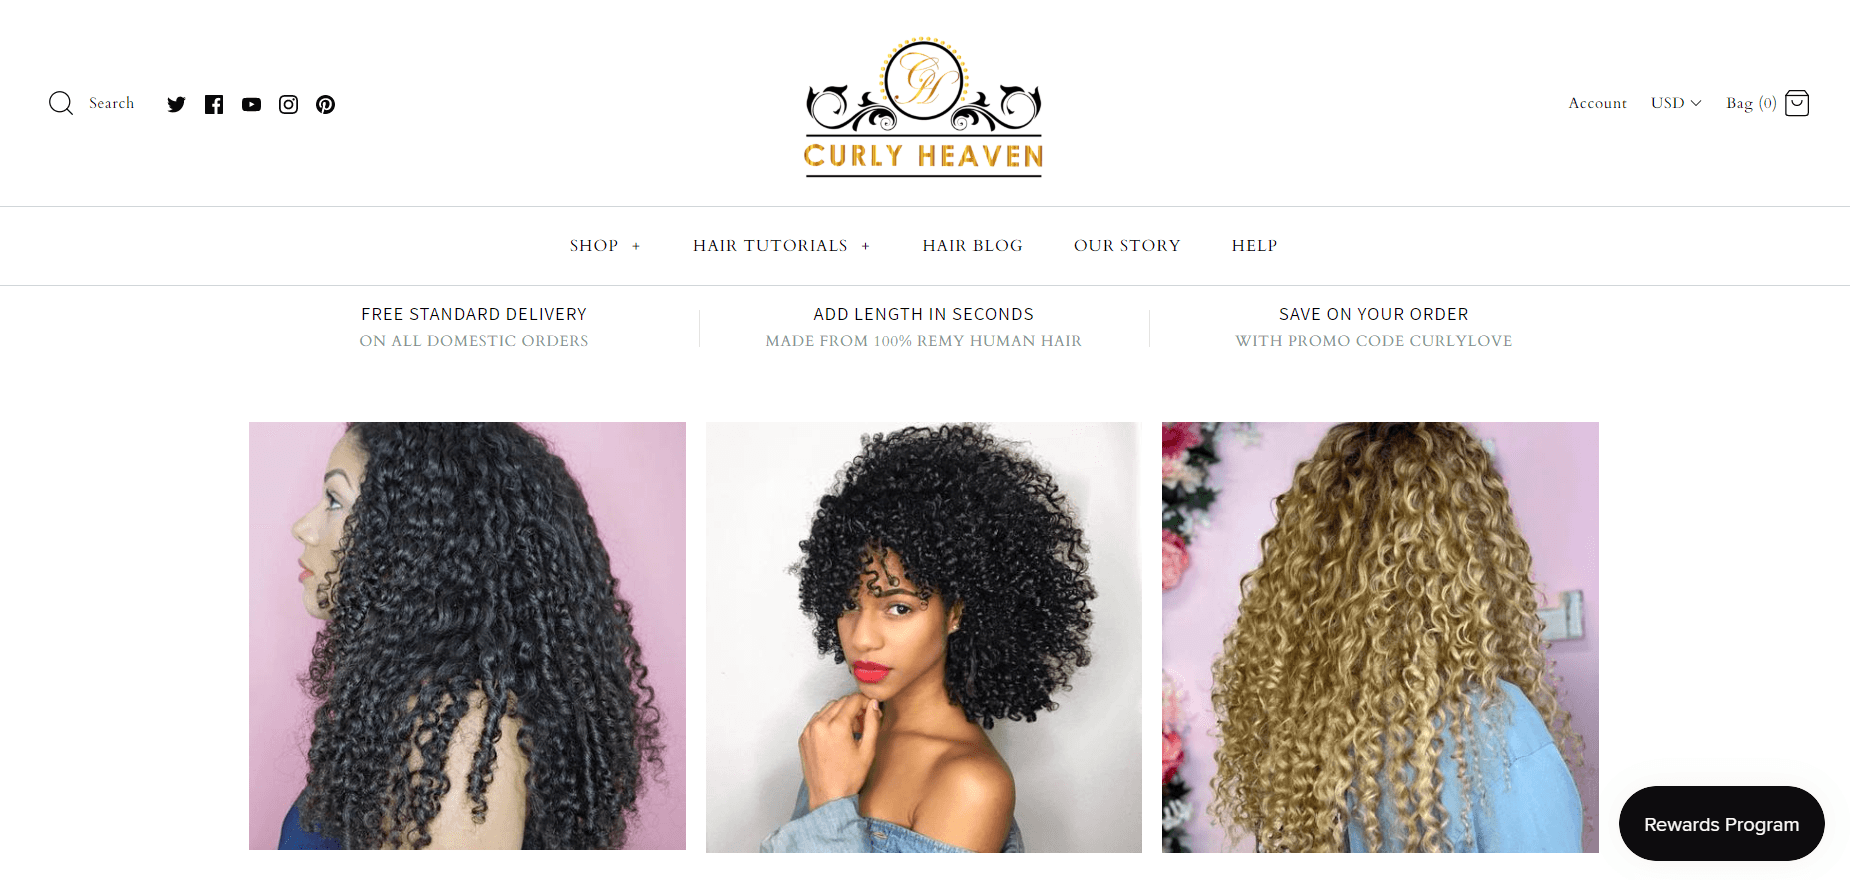 This screenshot from Curly Heaven shows headshots of three different women with varying lengths and colors of curly hair extensions.